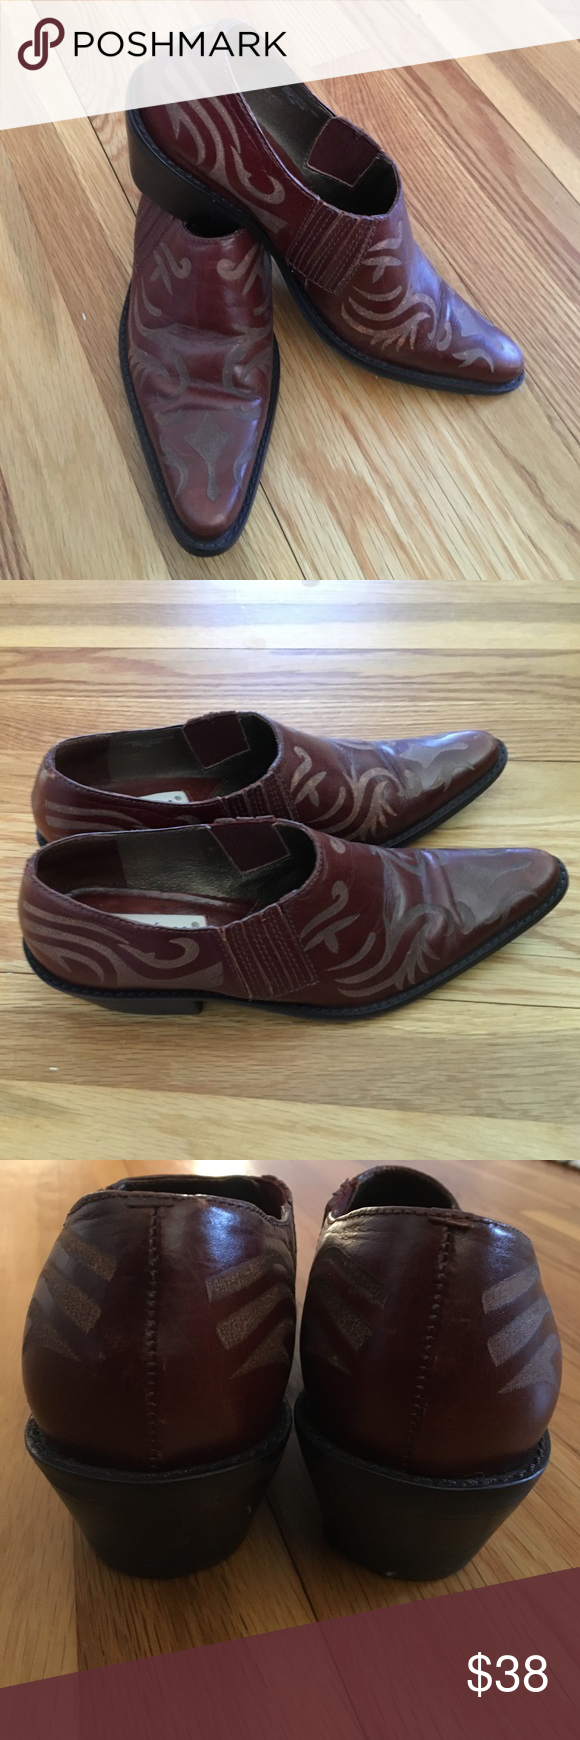 Matisse Booties in Cognac Pointed toe booties in cognac brown. Very little wear in great condition.' Size 7.5 matisse Shoes Ankle Boots & Booties